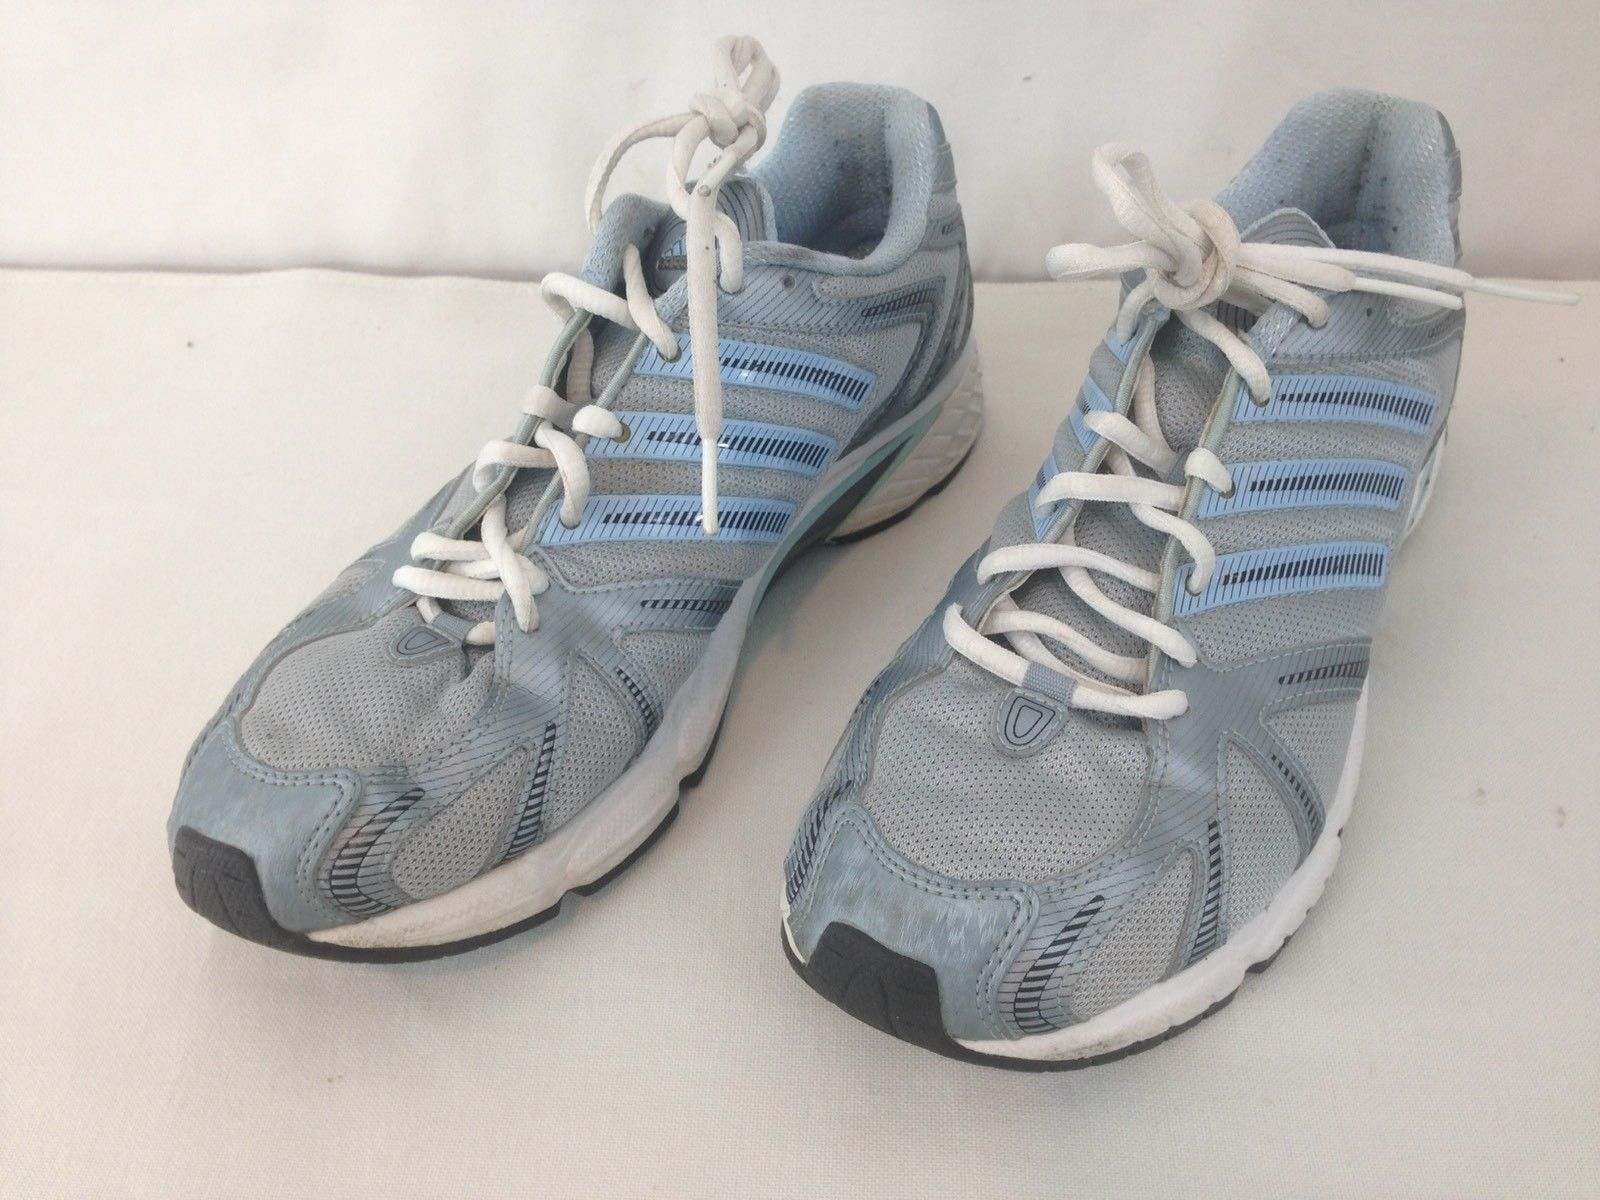 Adidas 451921 Womens 9.5 Adiprene Gray Blue Walking Running Athletic Shoes